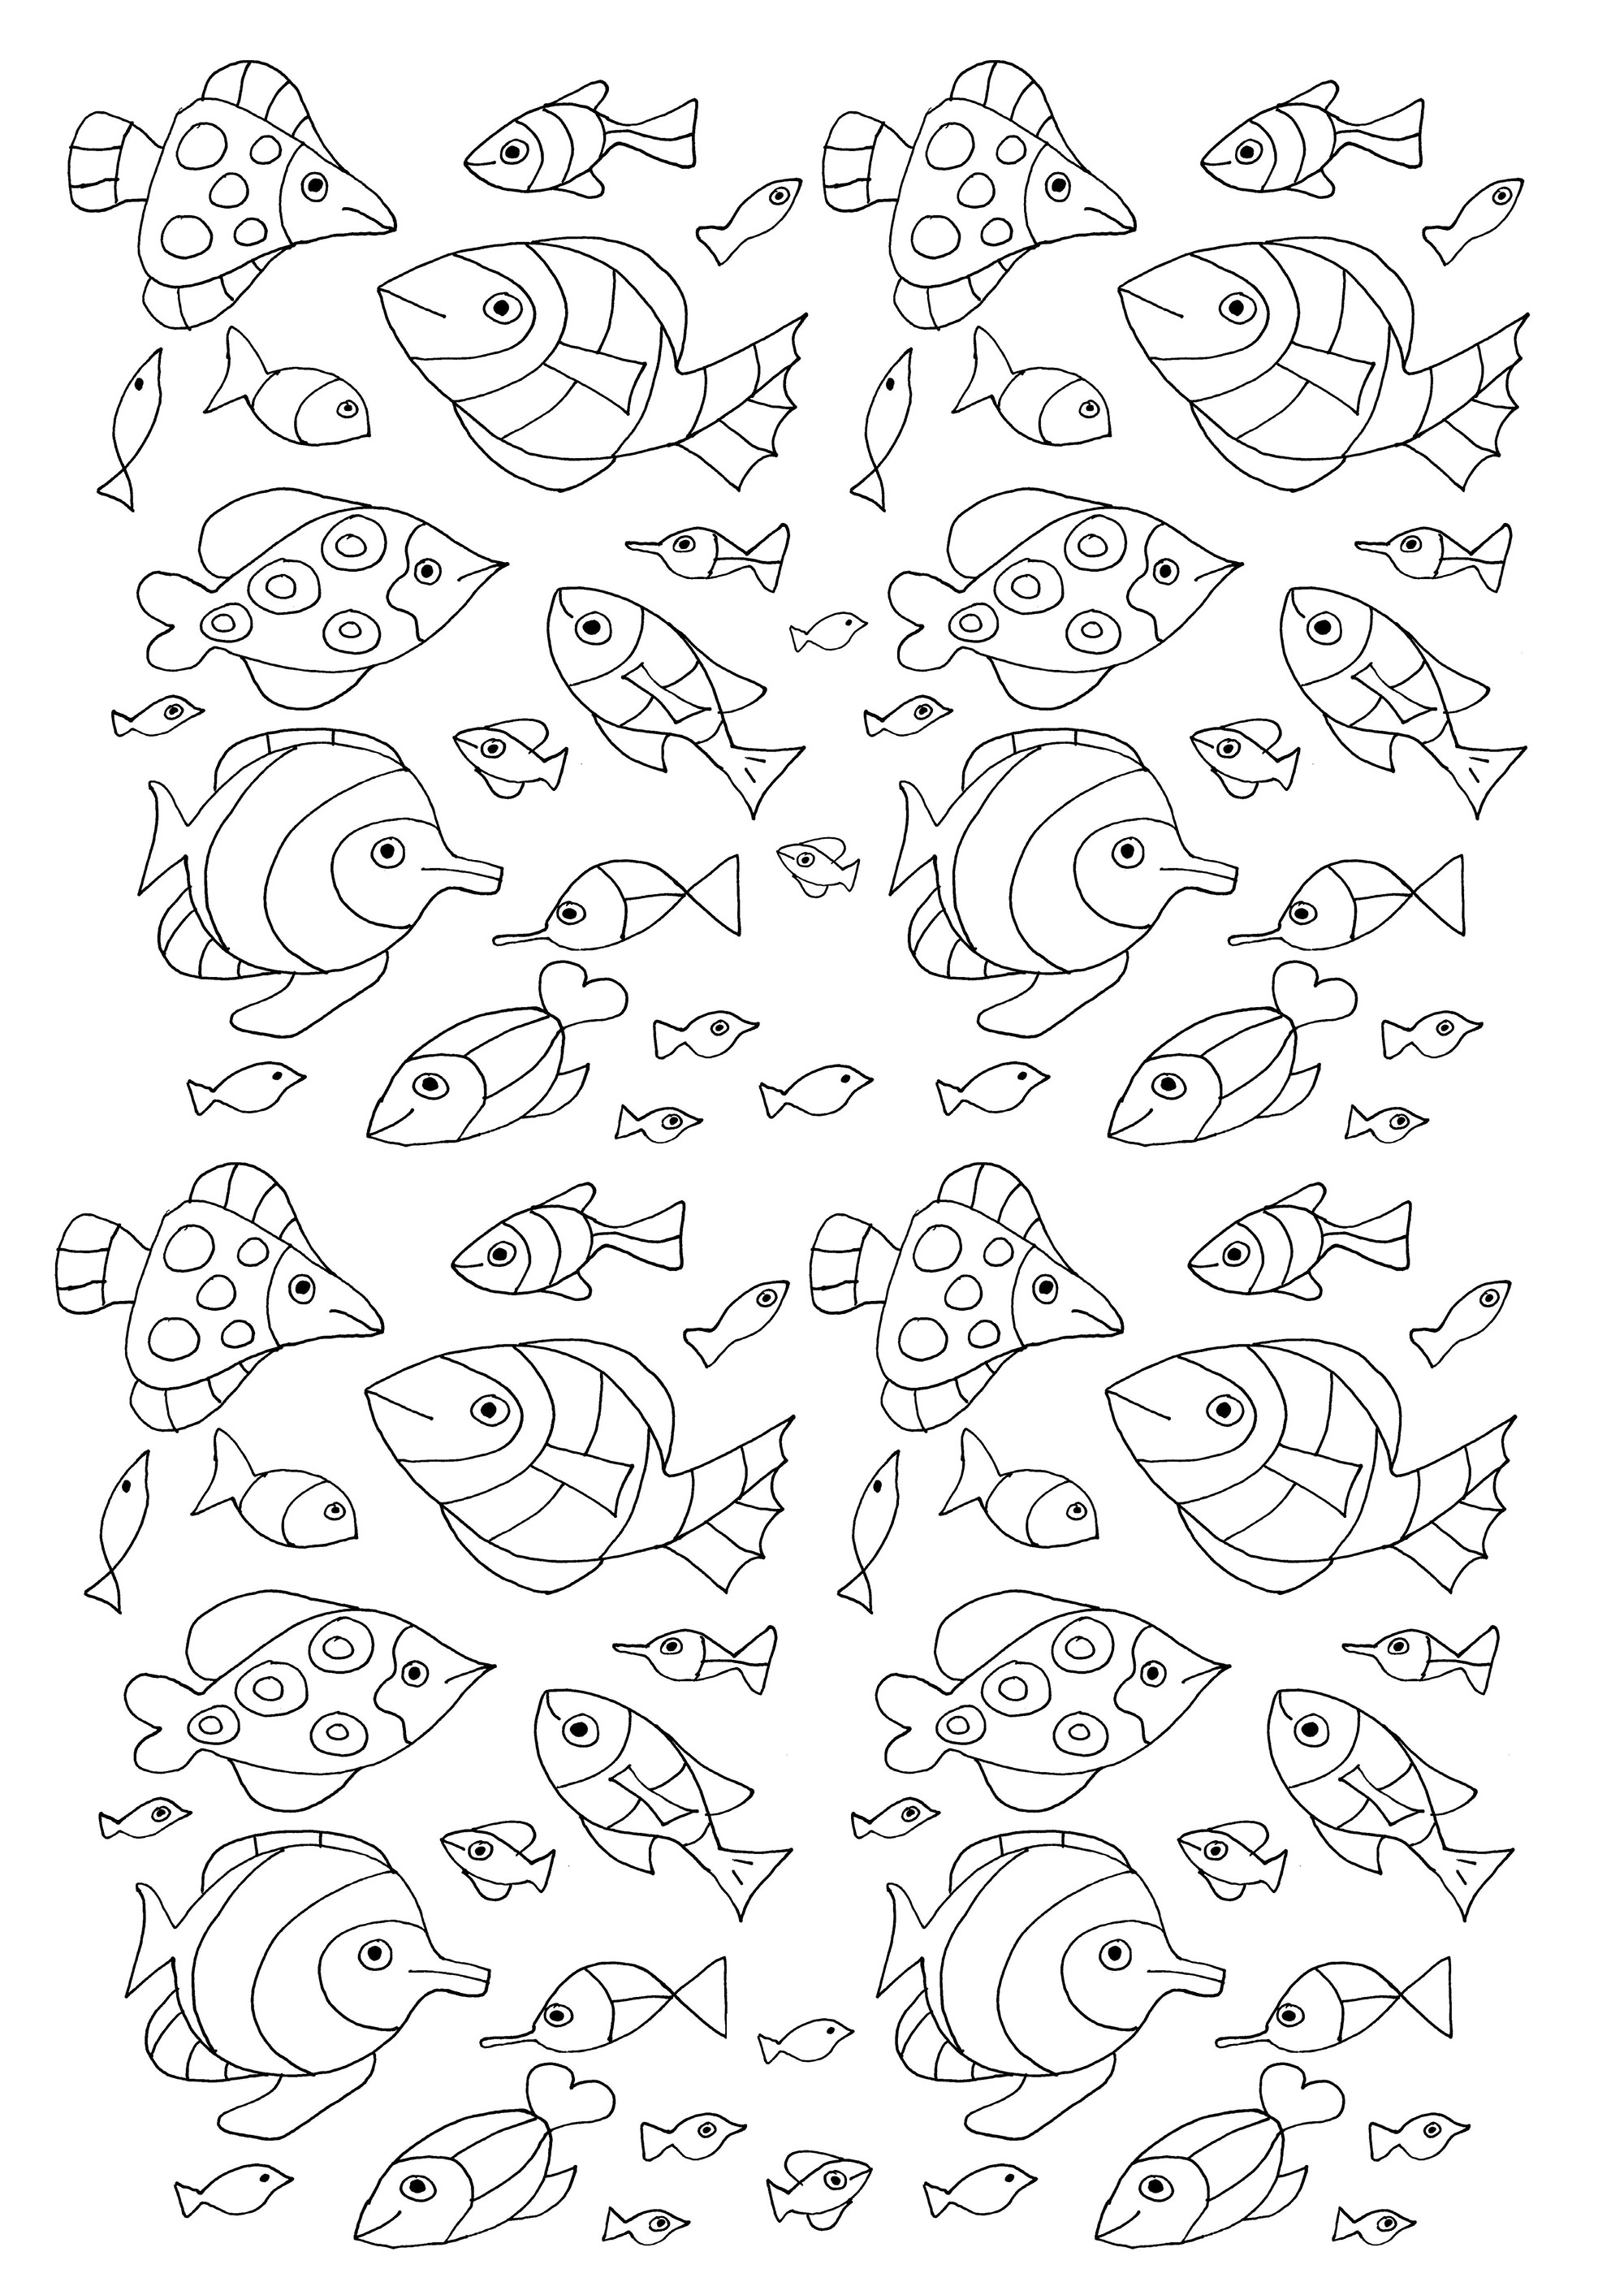 100 Fish to color